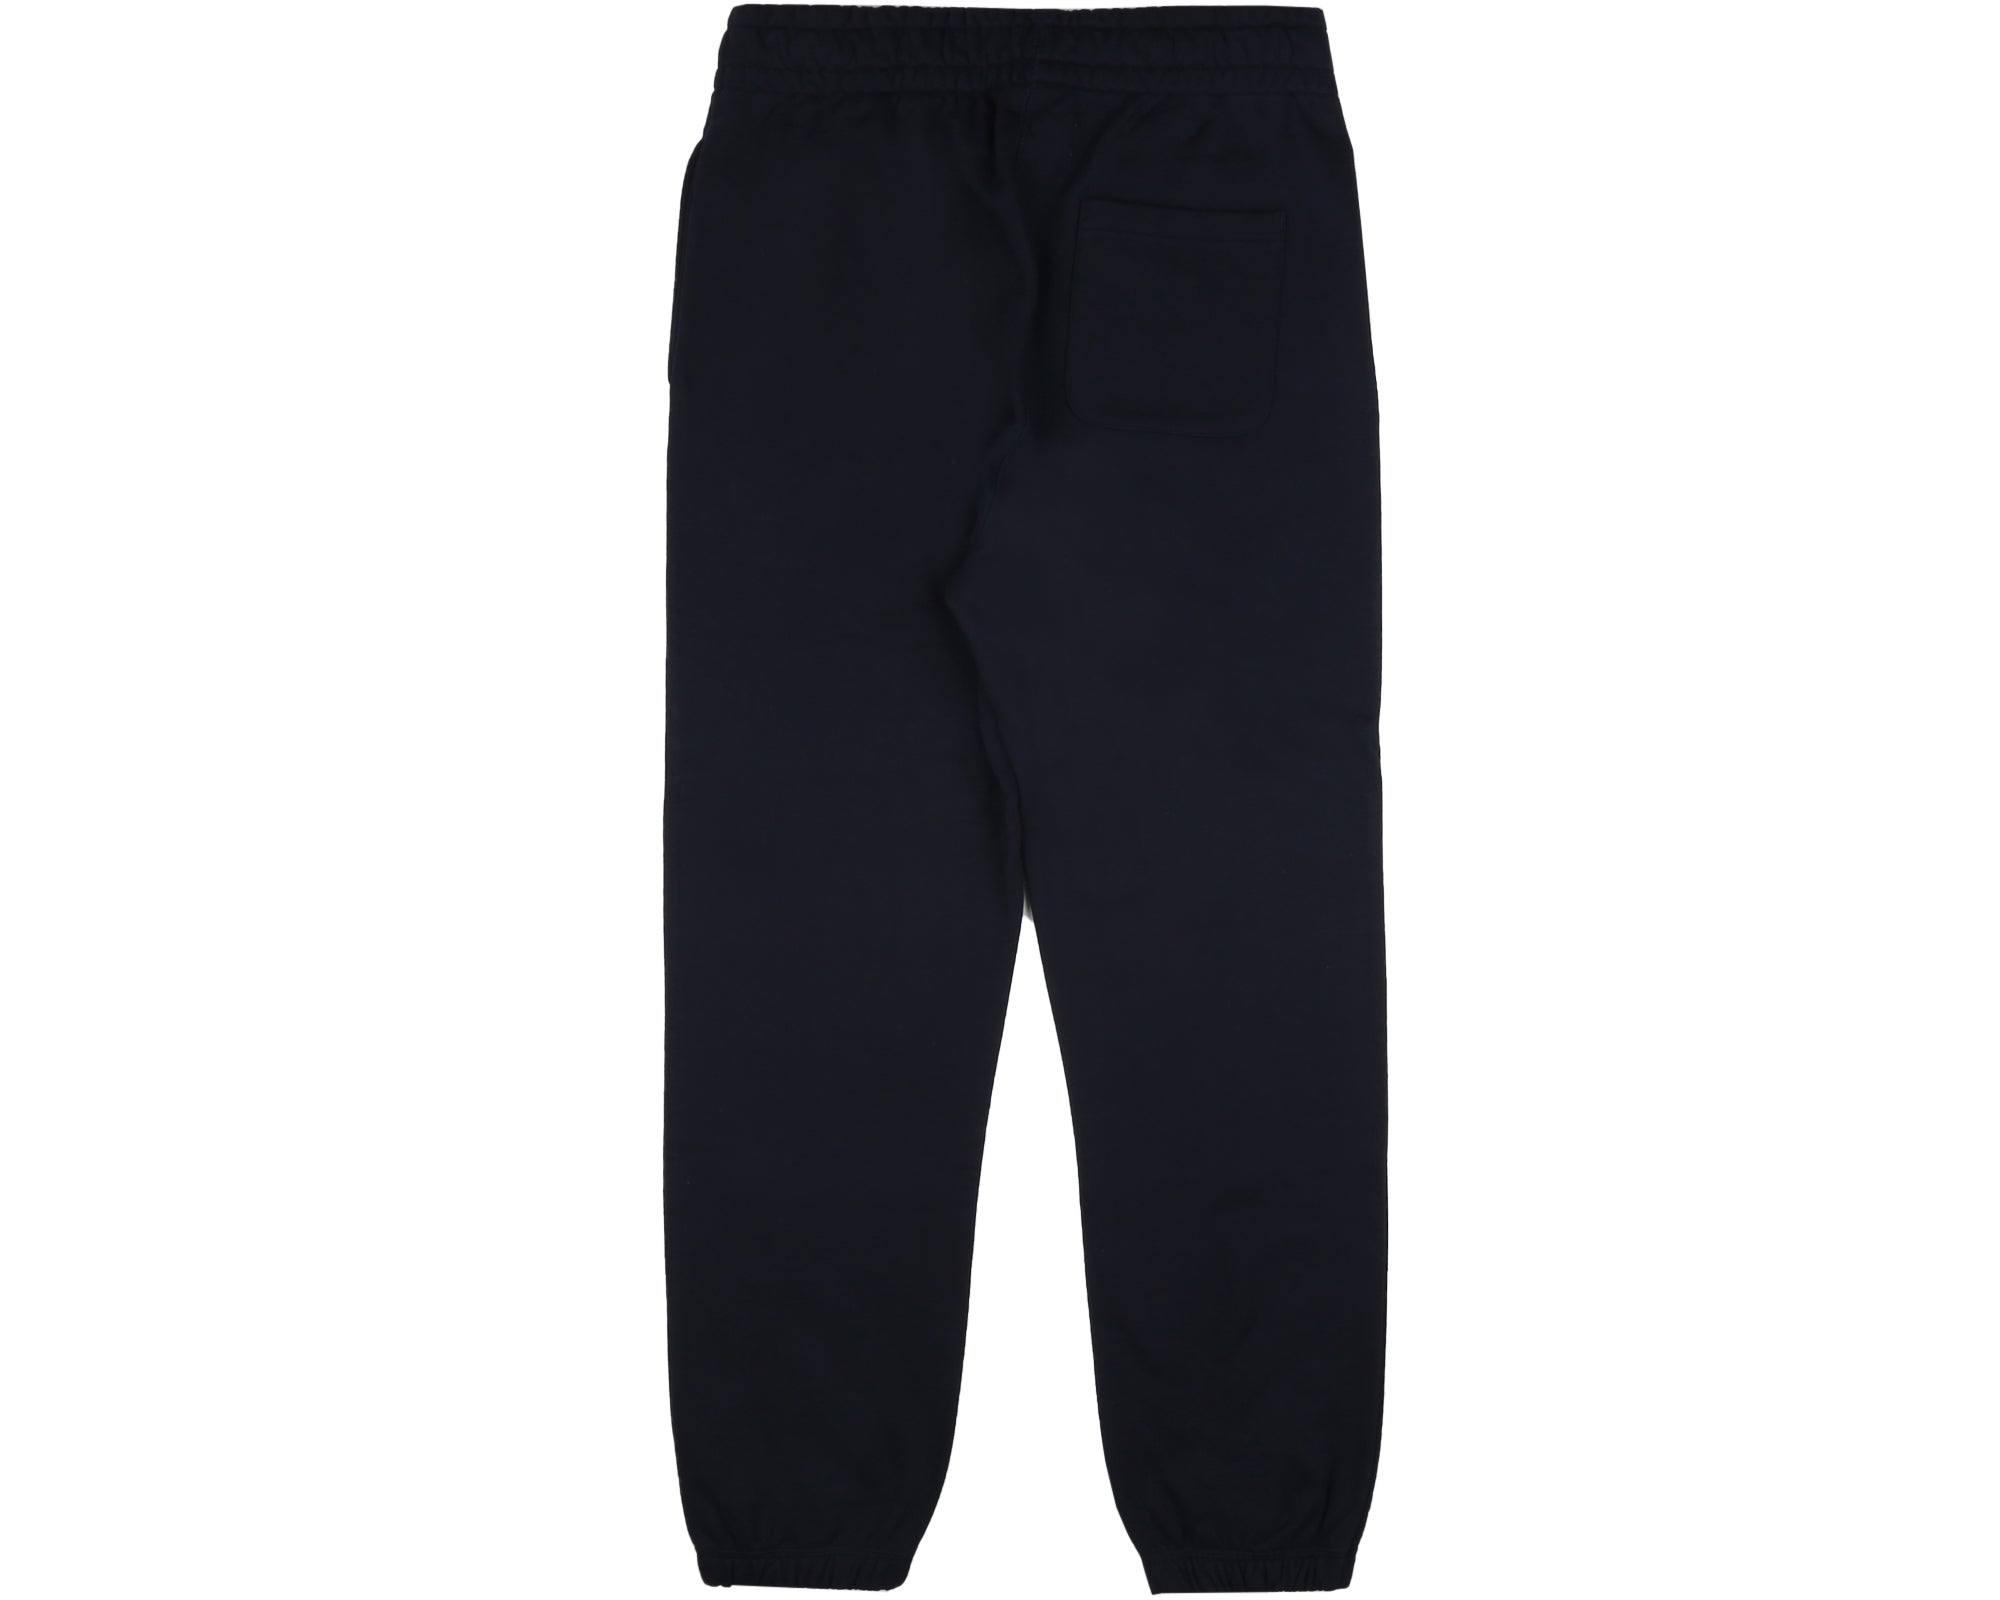 ROCKET RIOT SWEATPANT - NAVY